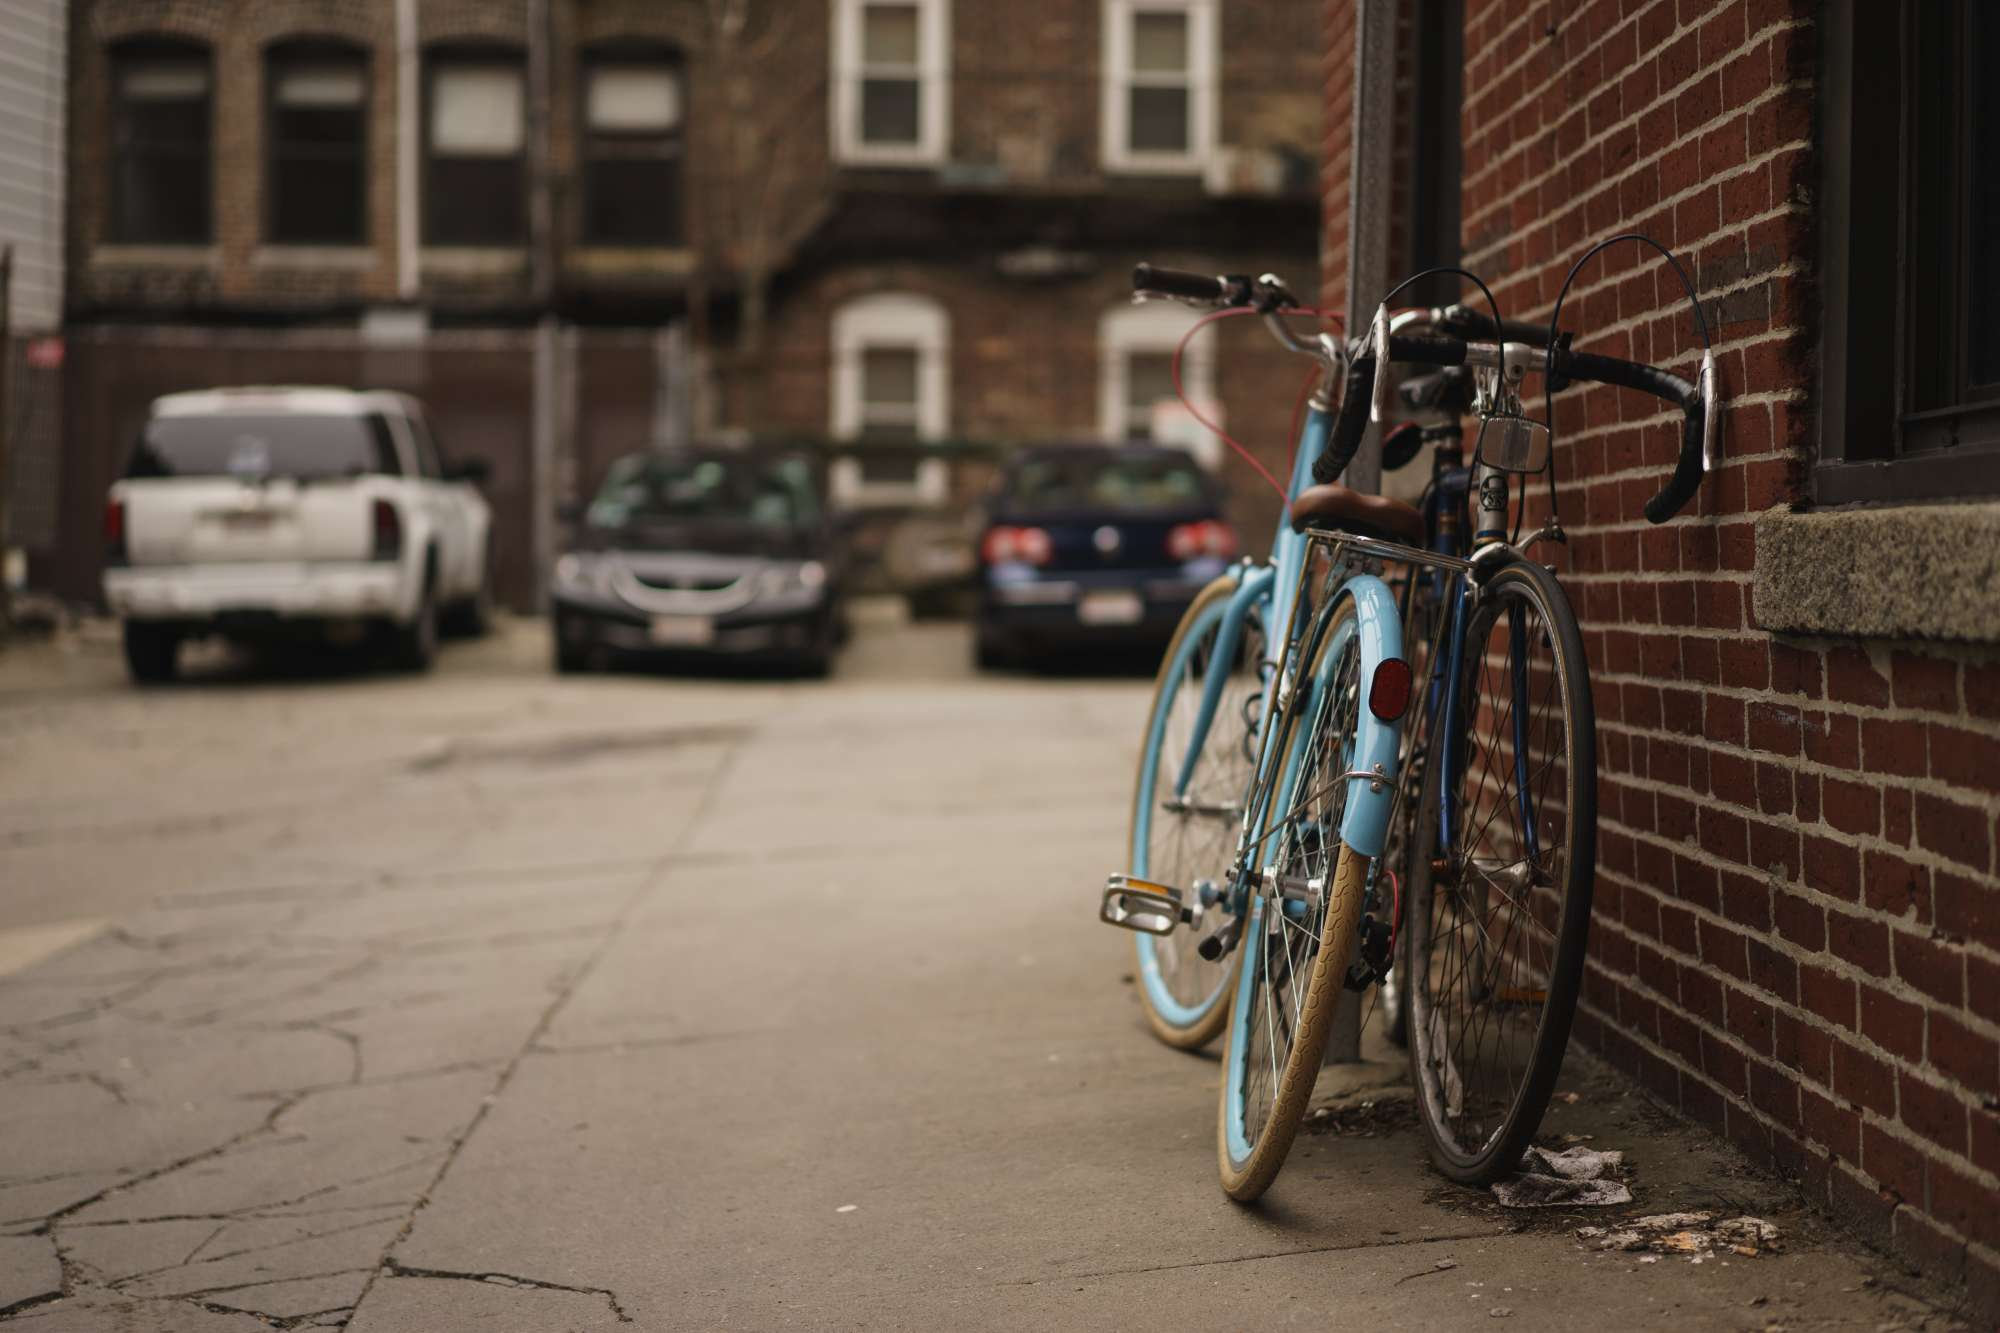 Two Bikes on the street